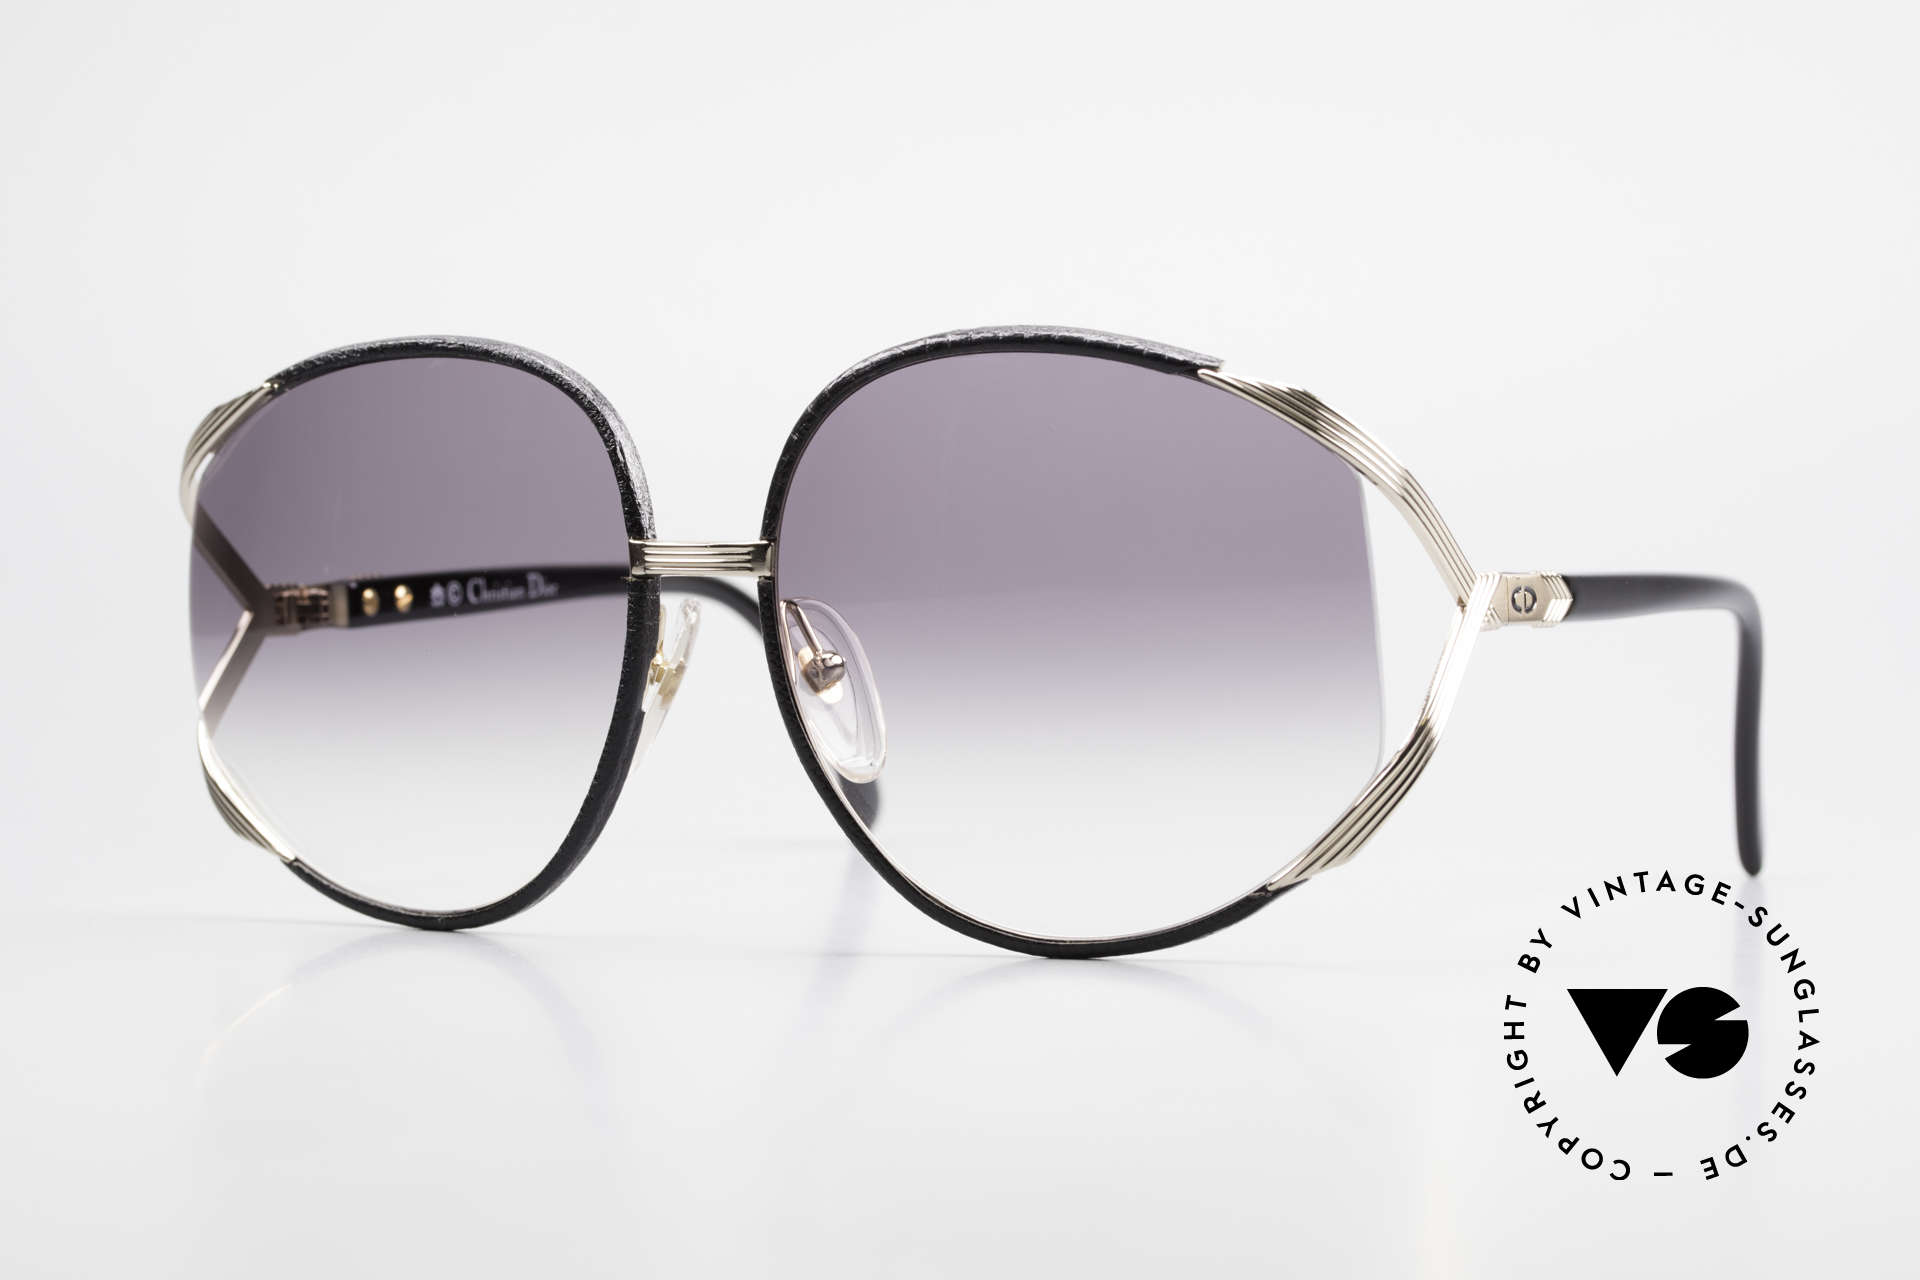 Christian Dior 2250 Rihanna Sunglasses Leather, oversized XL vintage ladies sunglasses by Christian DIOR, Made for Women